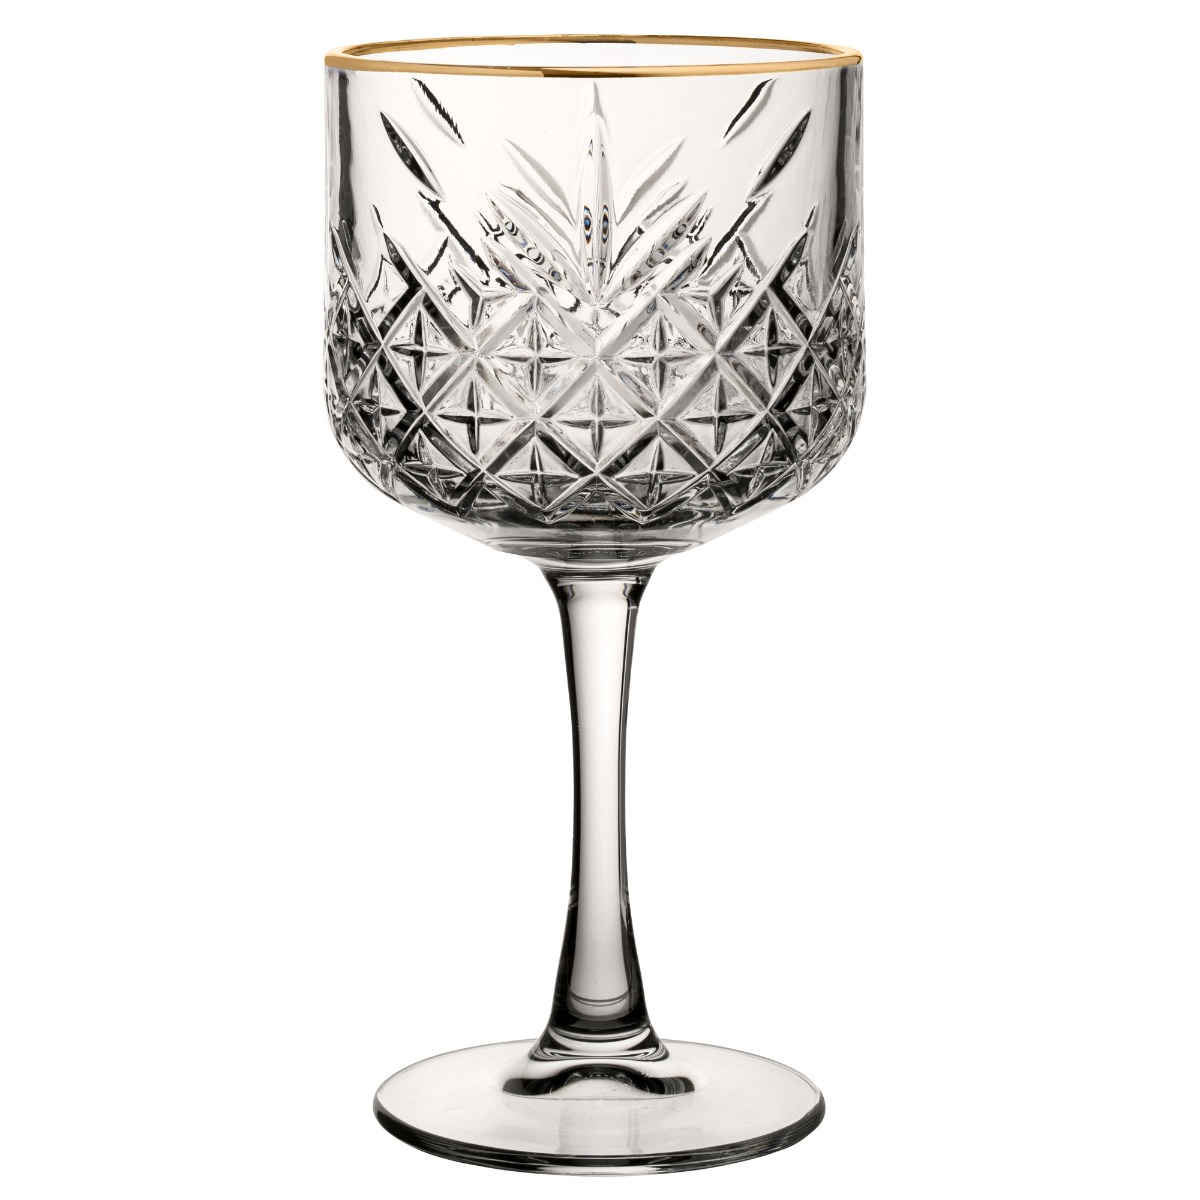 Gin Tribe - ROARING 20'S VINTAGE GIN & TONIC GLASS - gold rim